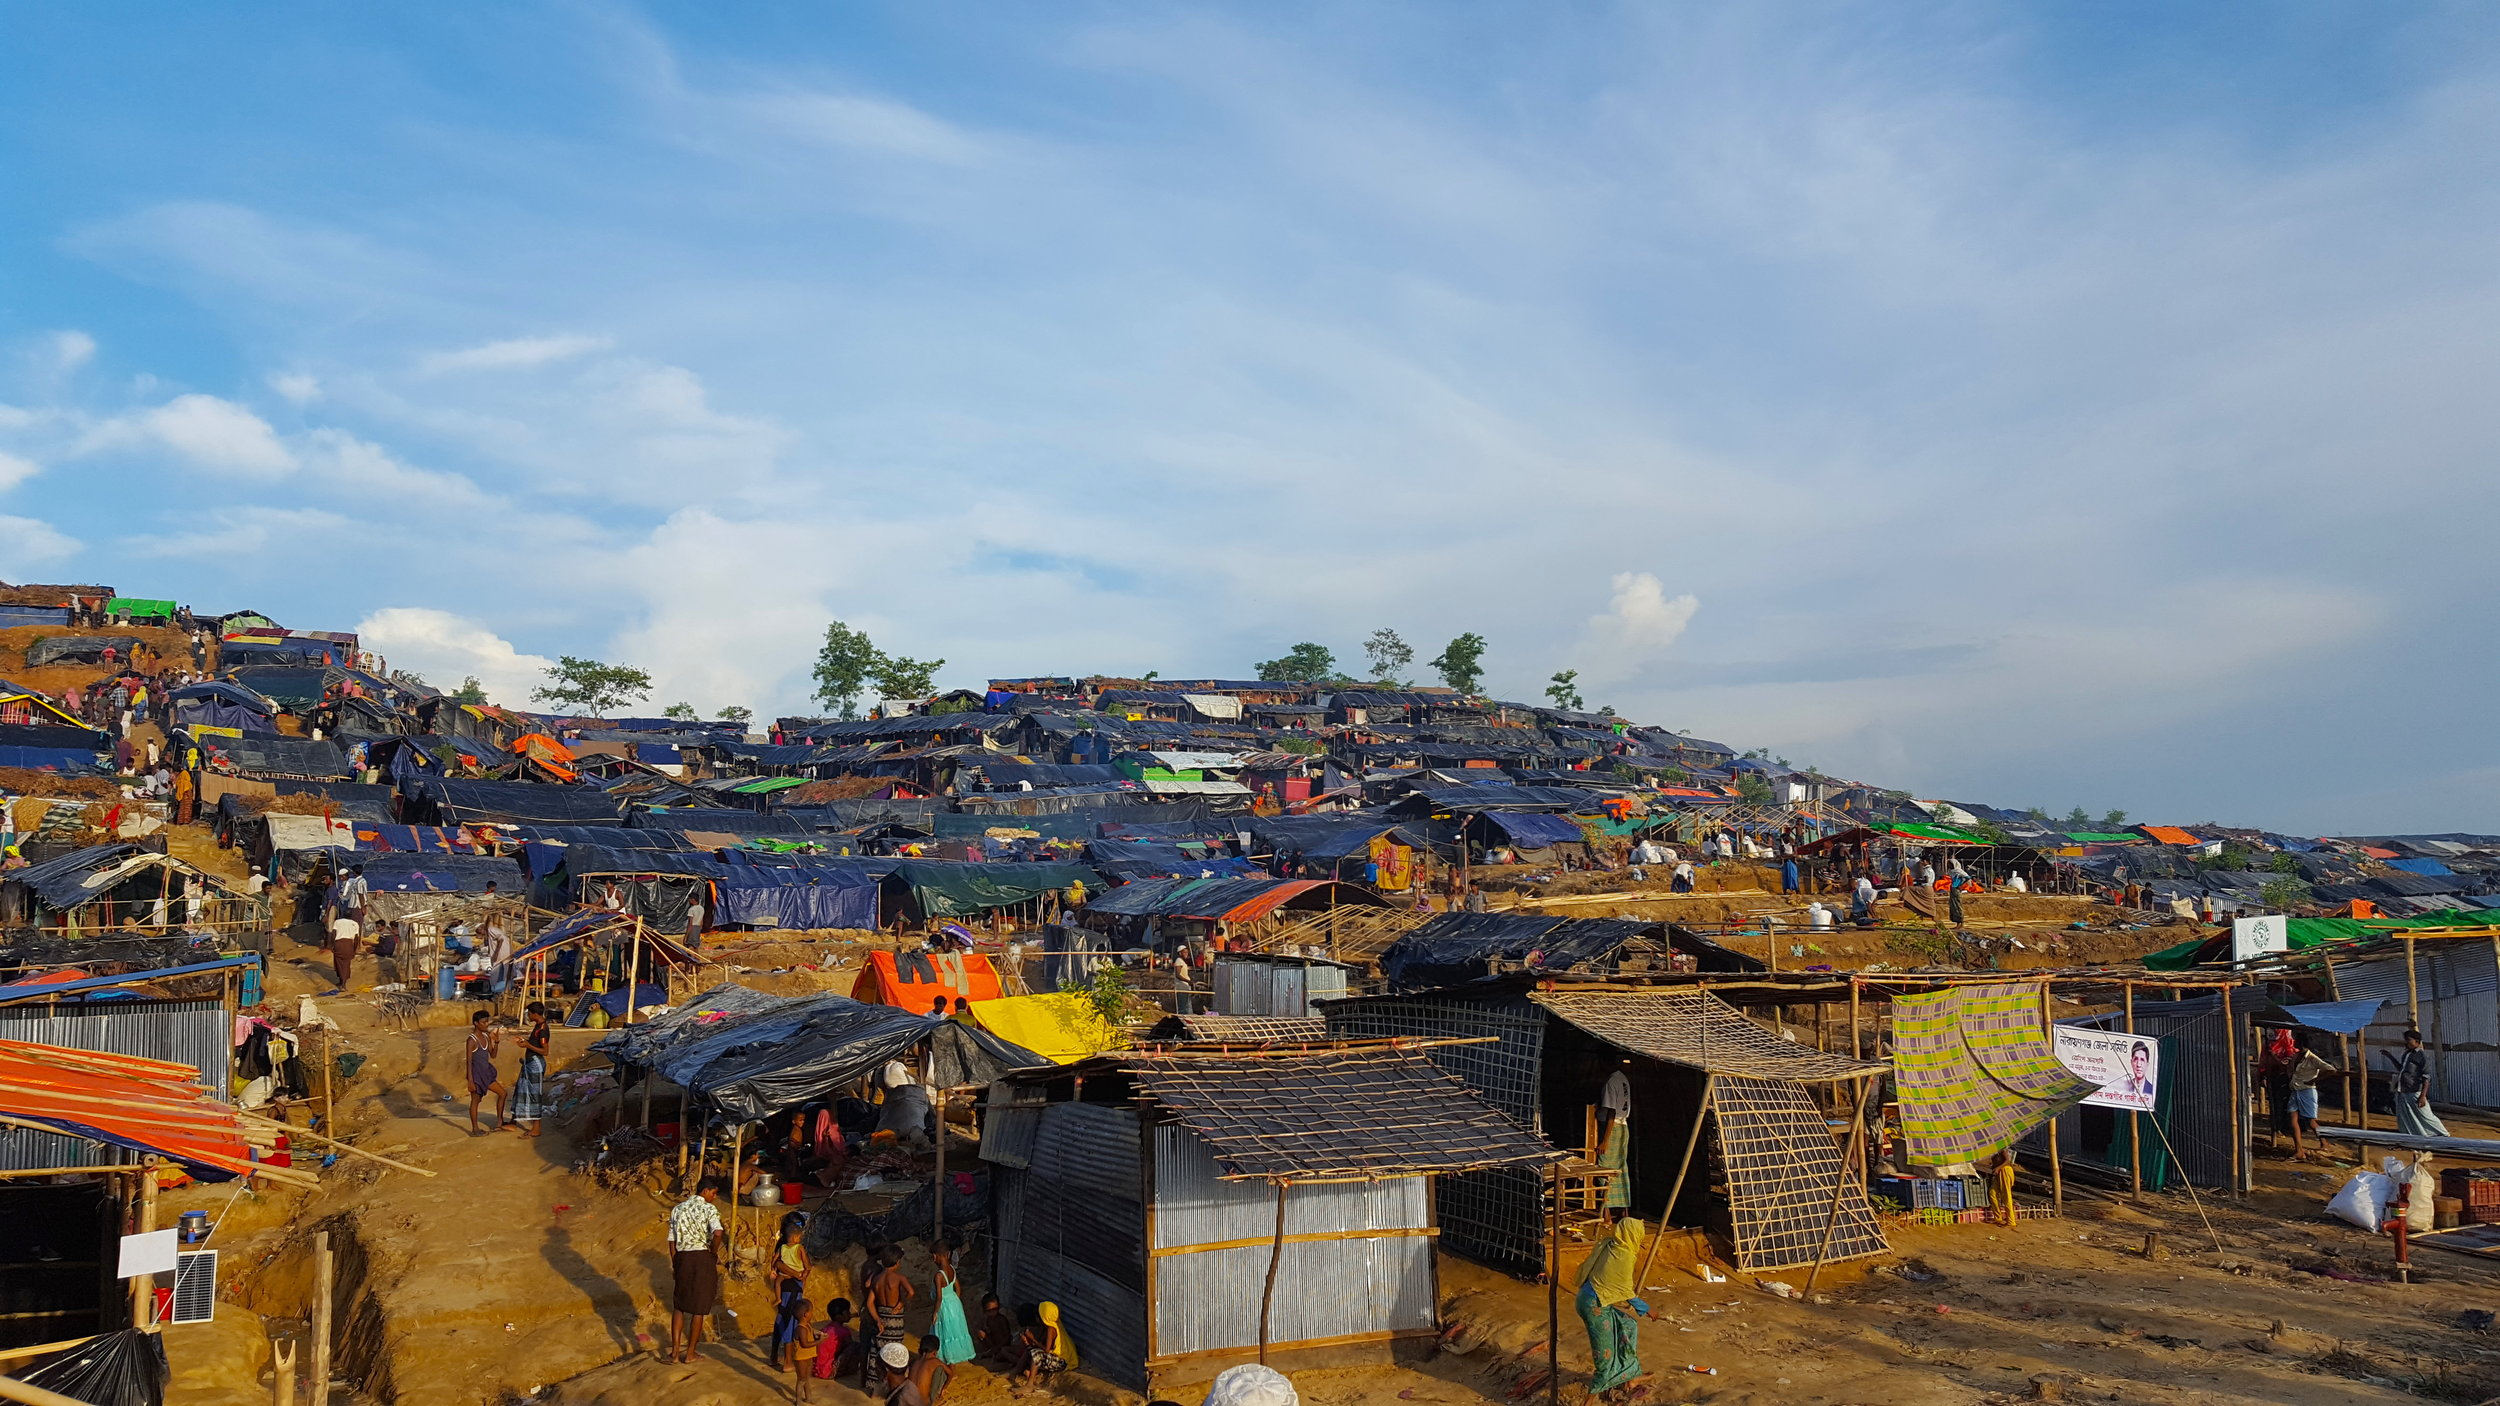 There are two main types of Rohingya refugee camps: makeshift camps and government-operated camps recognized by the Bangladeshi state. The former frequently spring out of the latter, though it is difficult to tell where one ends and the other begins, as refugees frequently set up new camps adjacent to existing ones. Since the upsurge in violence against the Rohingya in August 2017, the makeshift Kutupalong camp and surrounding camps at Ghumdum, Balukhali, and Thangkhali have swelled rapidly and merged into one another. The International Organisation for Migration (IOM) refers to this collective settlement as the Kutupalong-Balukhali expansion site. The pictured favela consists of hundreds of improvised homes that offer little protection from the environment. When it rains, water floods the camps, making it impossible for refugees to sleep on the dirt floors of their dwellings. These homes are equally uninhabitable when it is warm, because the plastic roofing covering most of them absorbs heat very easily.